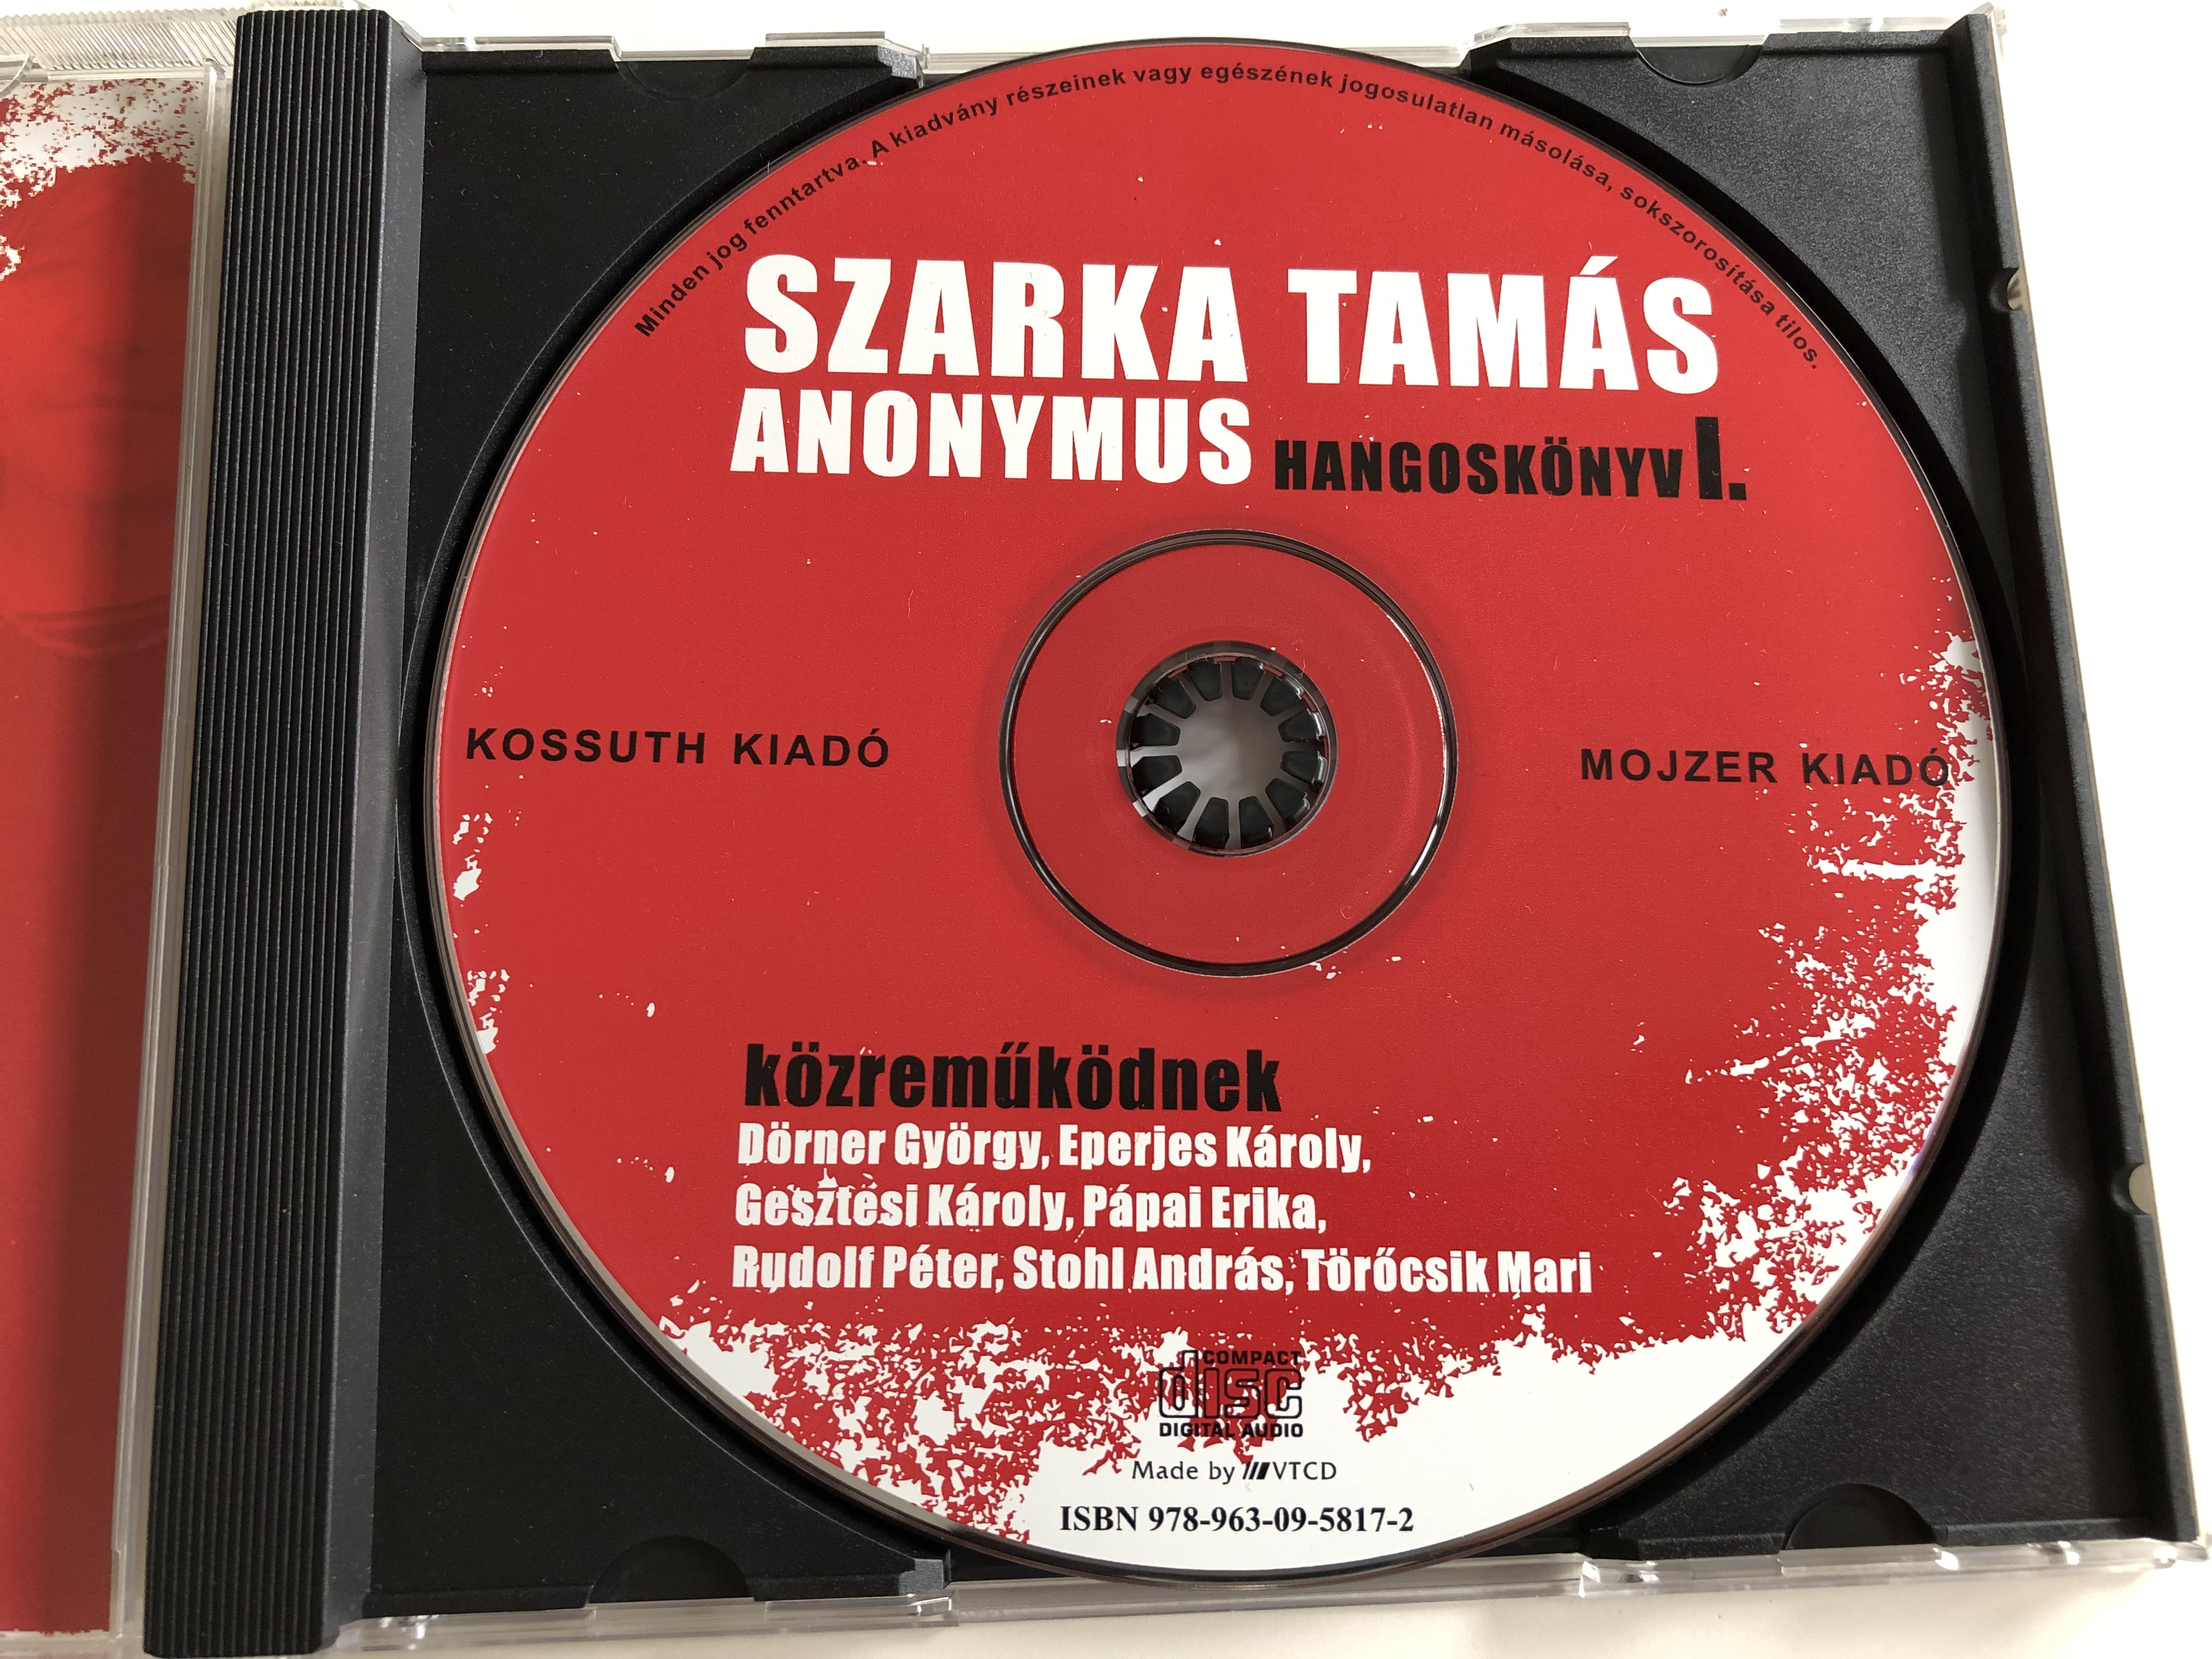 szarka-tam-s-anonymus-hangosk-nyv-i.-audio-book-contributors-d-rner-gy-rgy-eperjes-k-roly-gesztesi-k-roly-p-pai-erika-rudolf-p-ter-stohl-andr-s-t-r-csik-mari-audio-cd-2008-kossuth-mojzer-3-.jpg